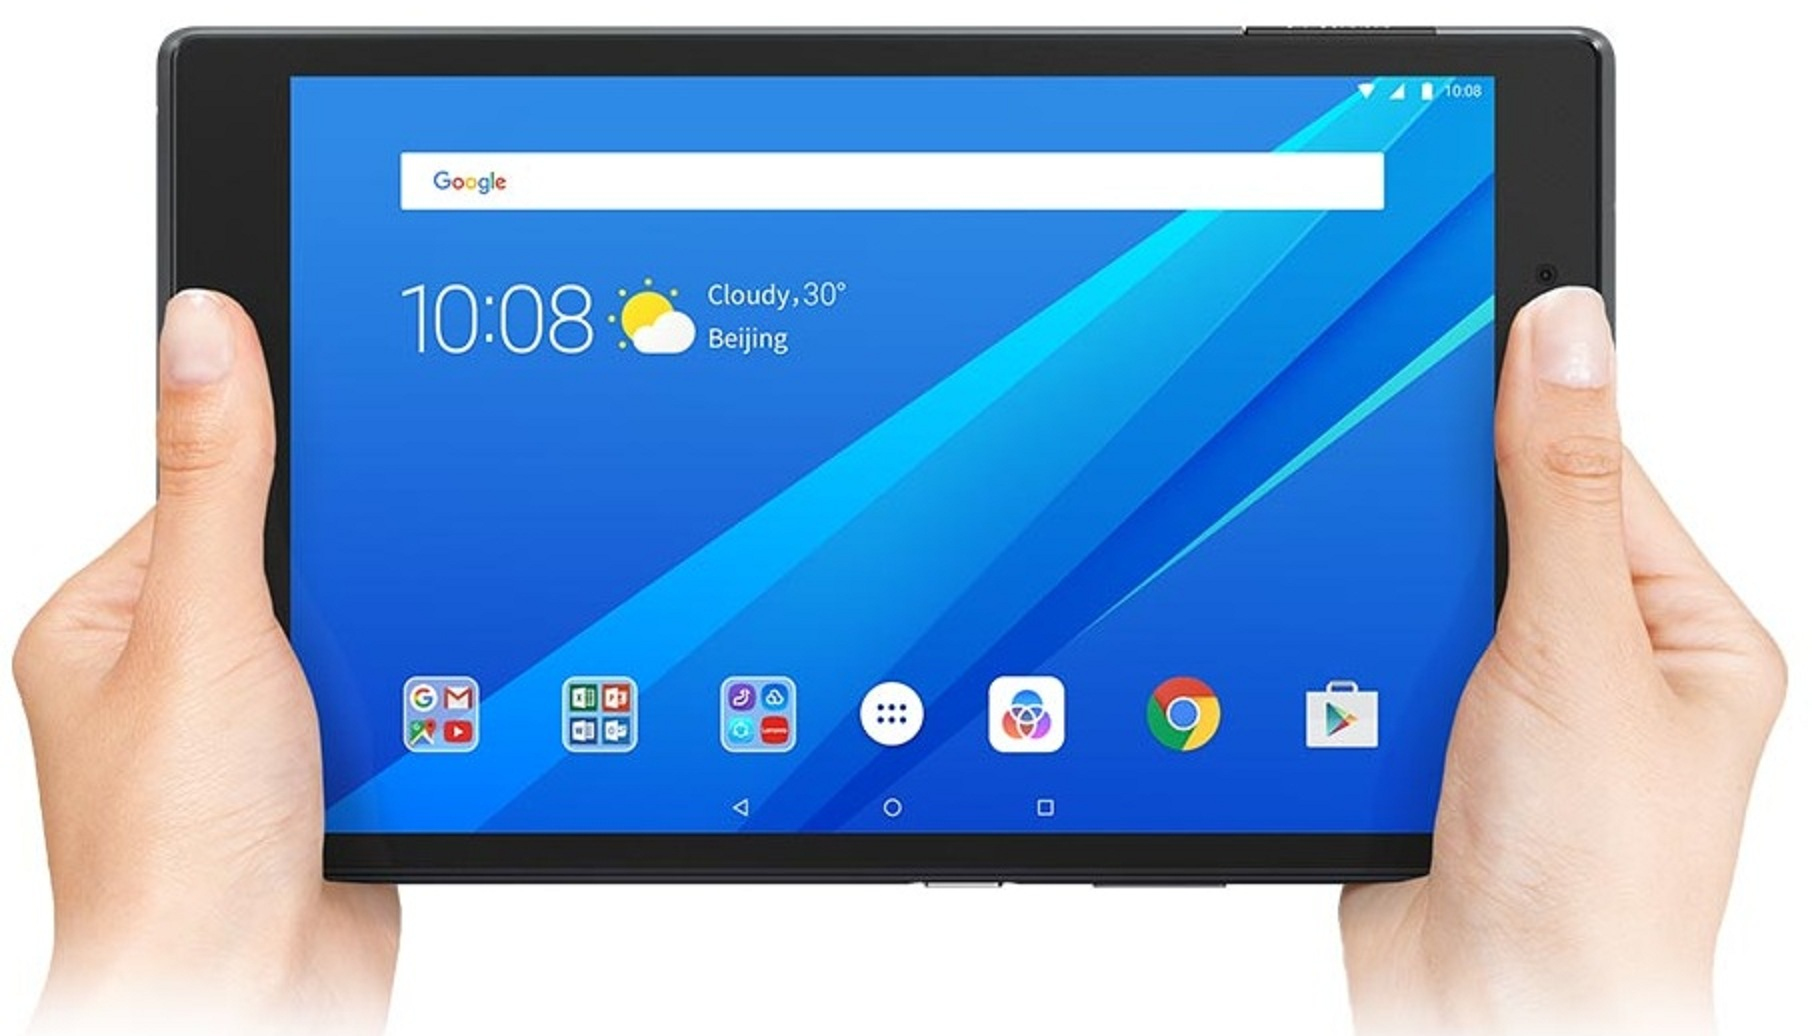 LENOVO ZA2B0040DE TAB 4 8 16GB BLACK TABLET